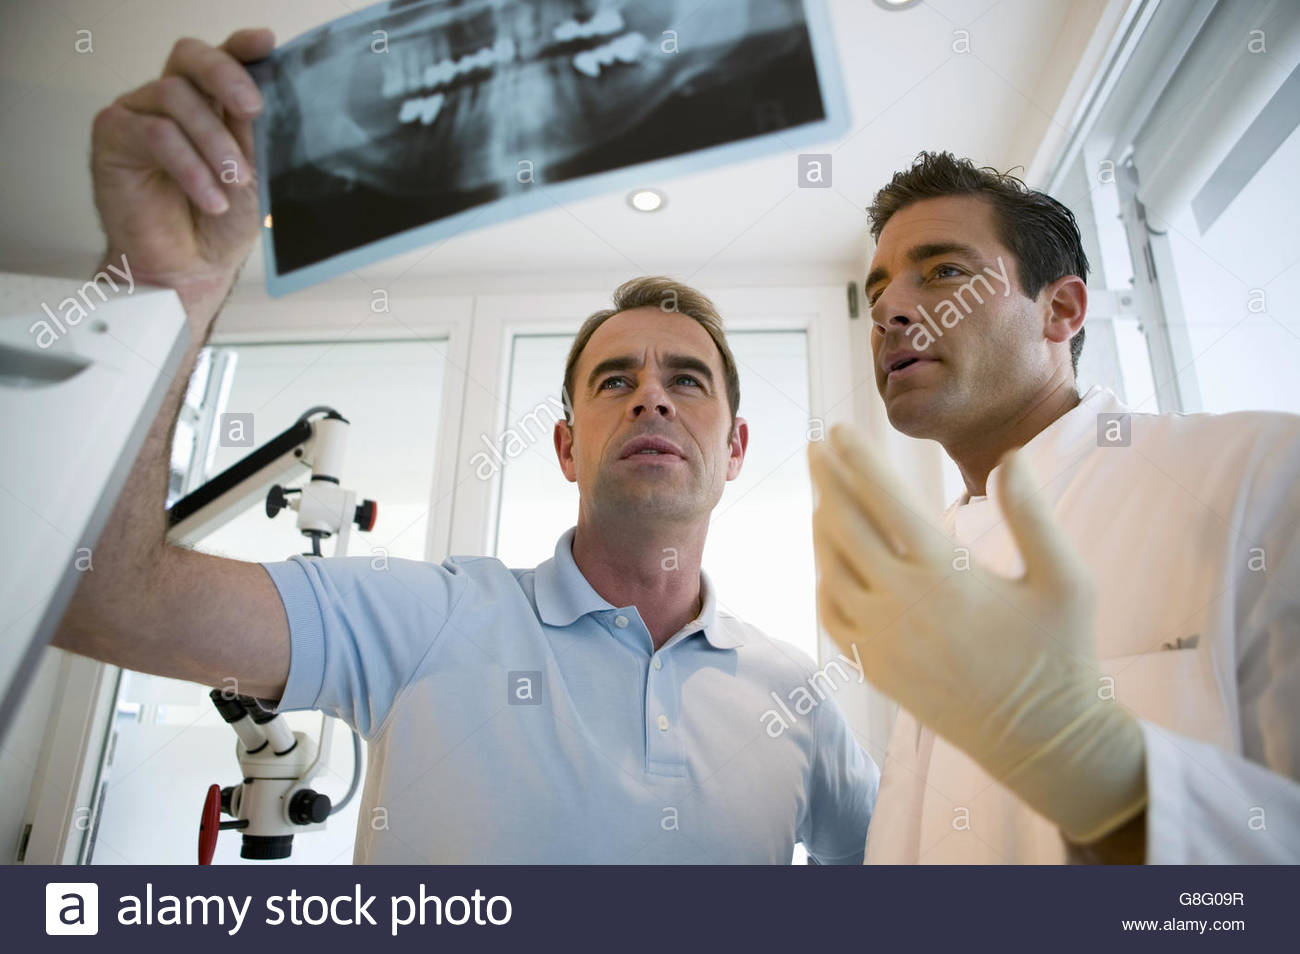 Dentist and dental assistant looking at dental x-ray - Stock Image